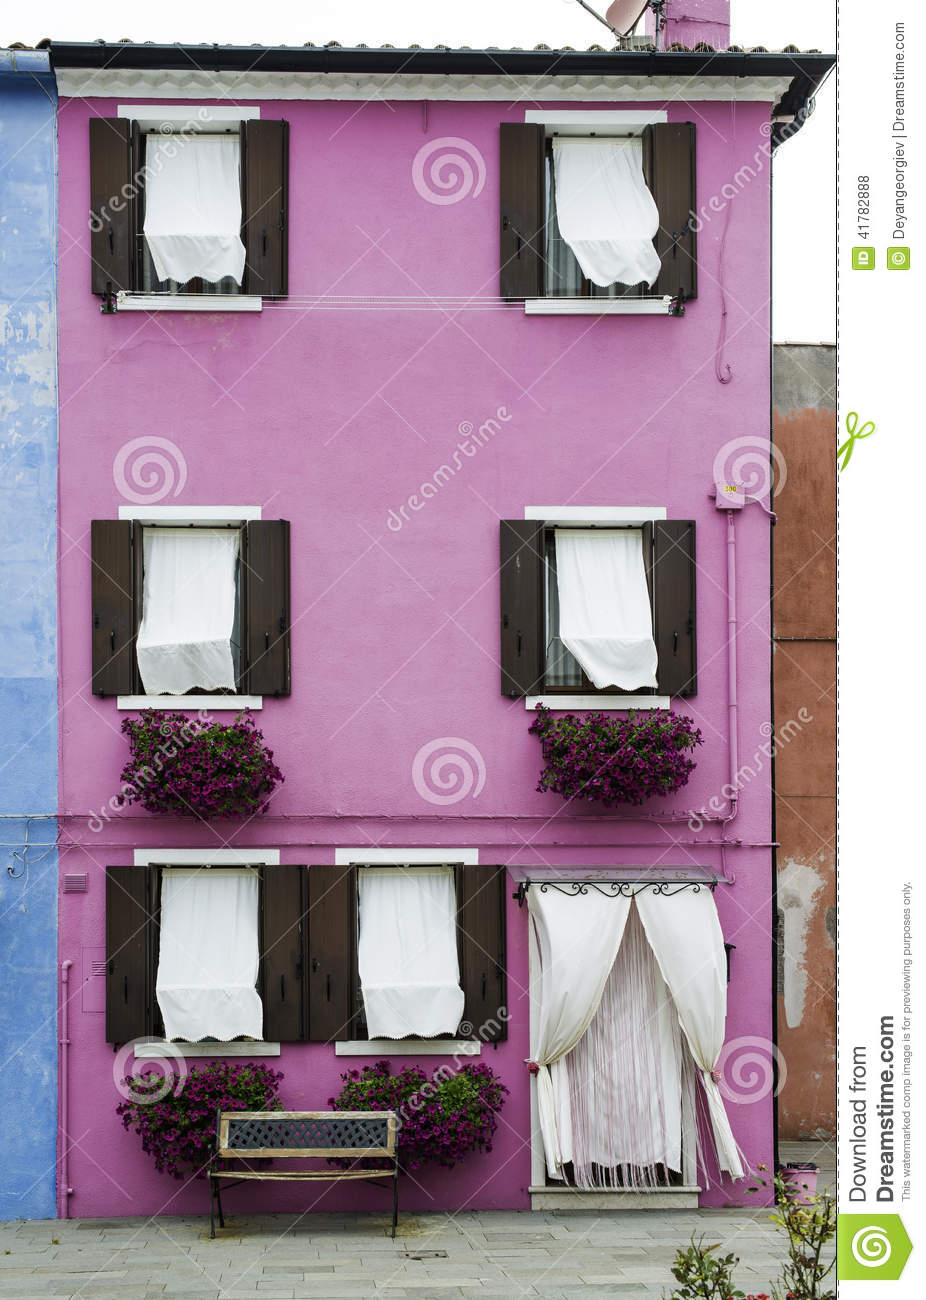 Bright Pink Color House In Venice Stock Photo - Image of exterior ...